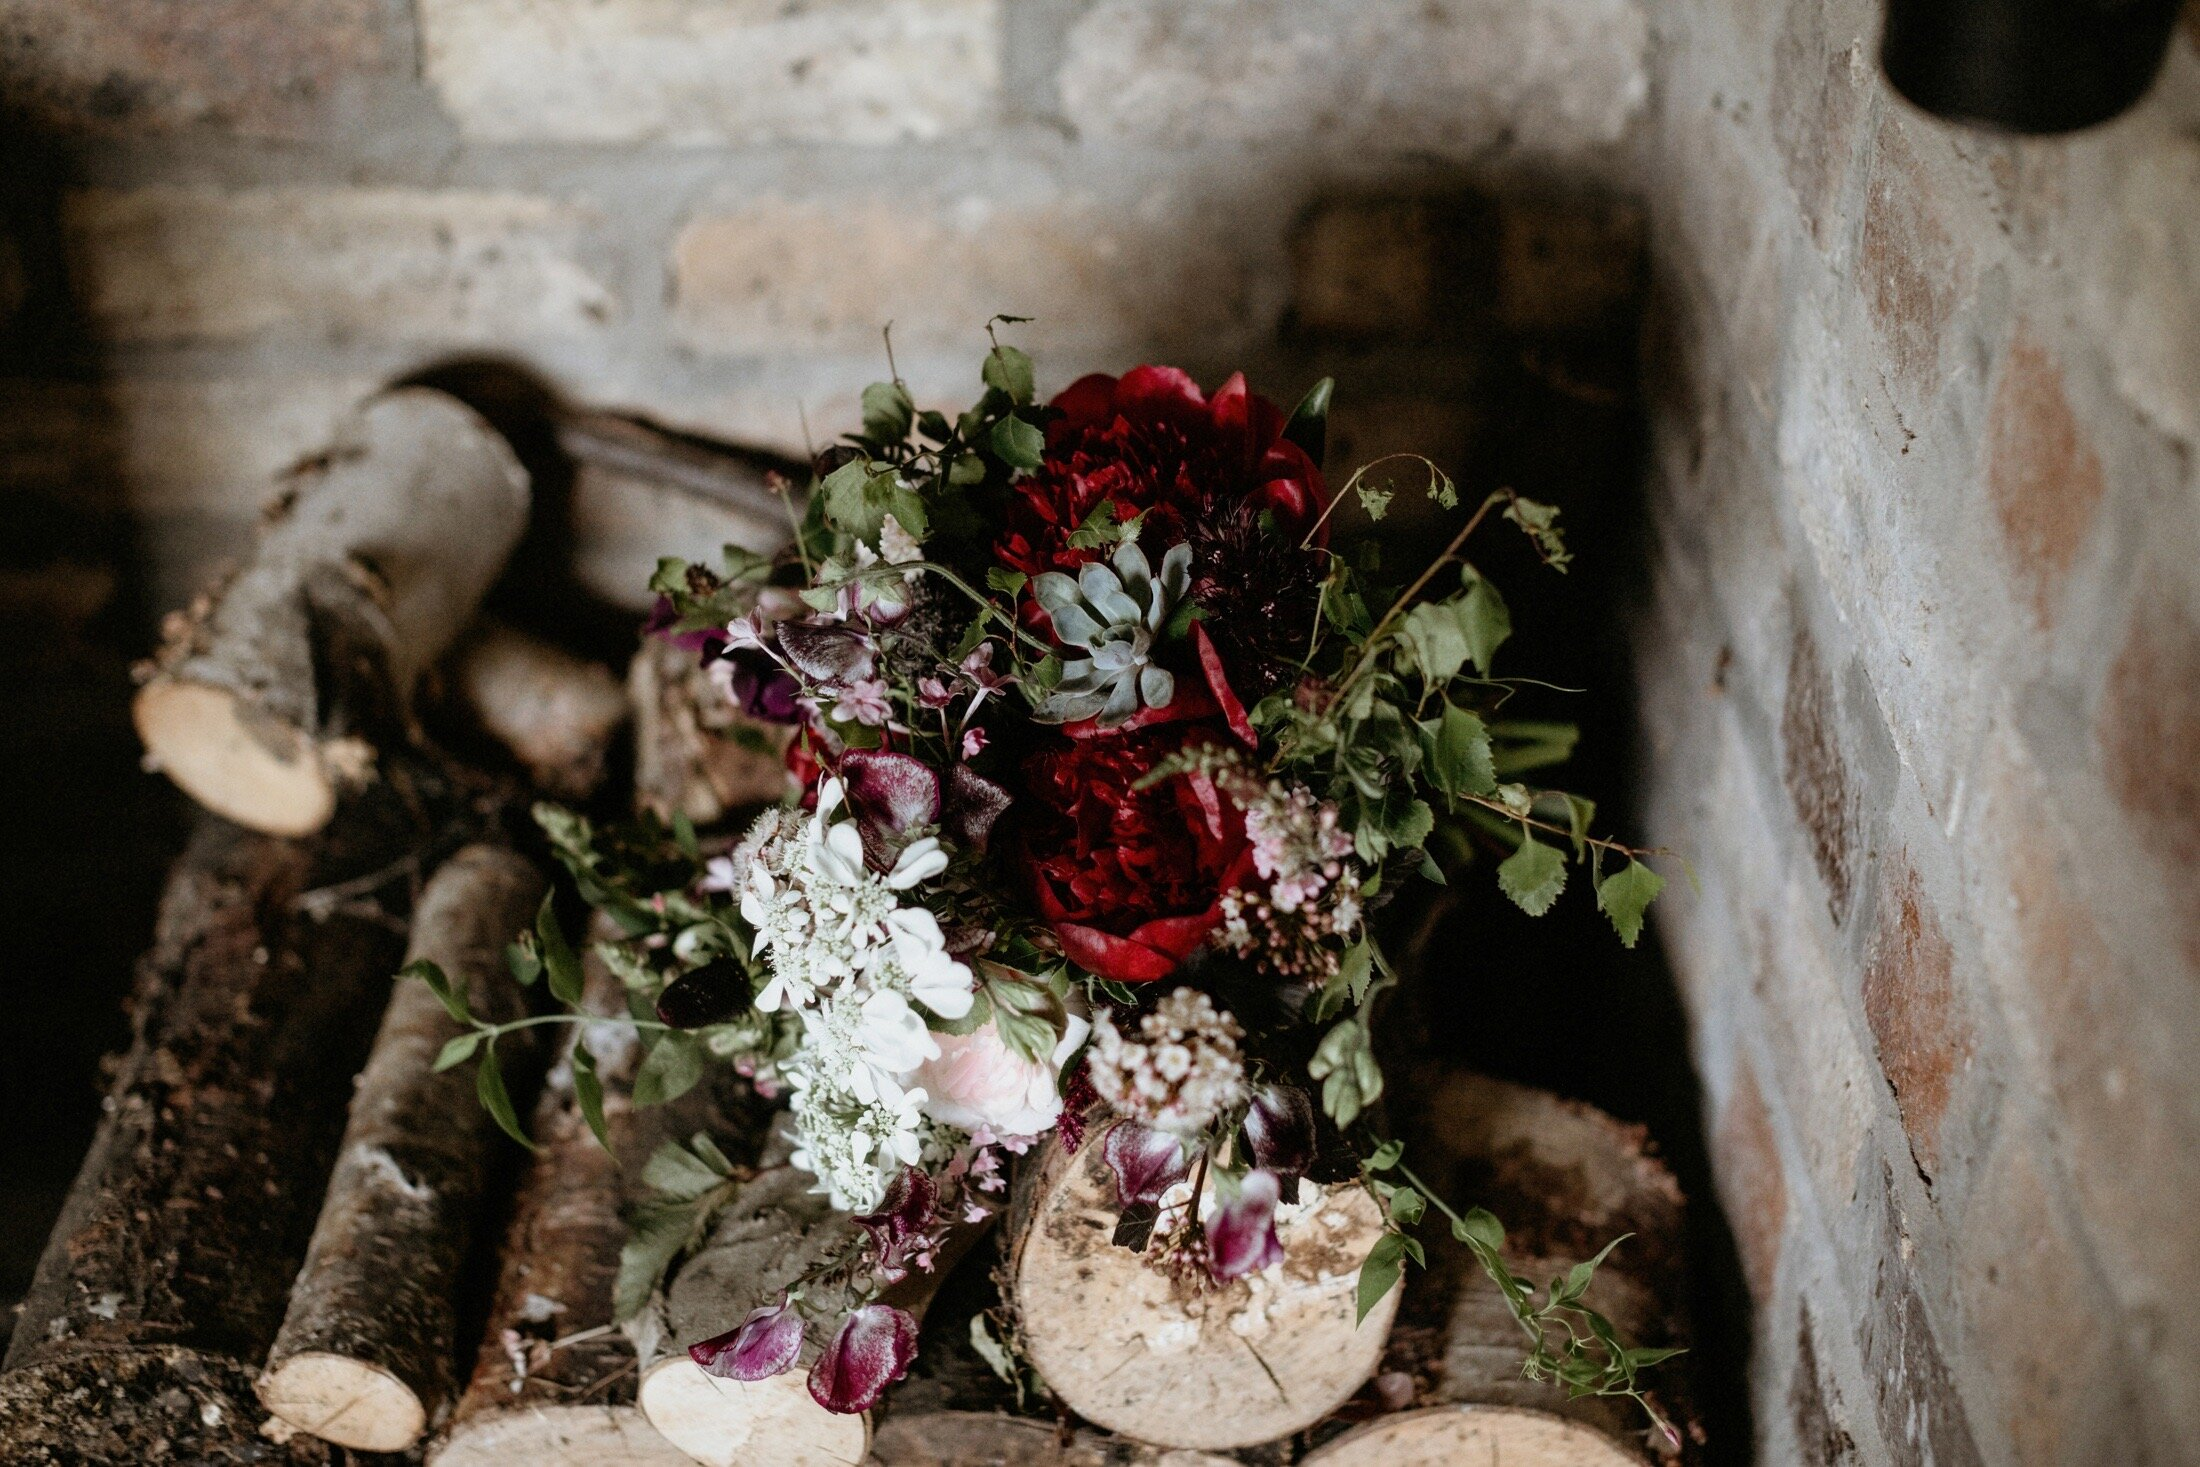 Burgundy And Blush Rustic Summer Wedding At Harelaw Farm Sustainable Wild Flower Wedding And Funeral Flowers By Briar Rose Design